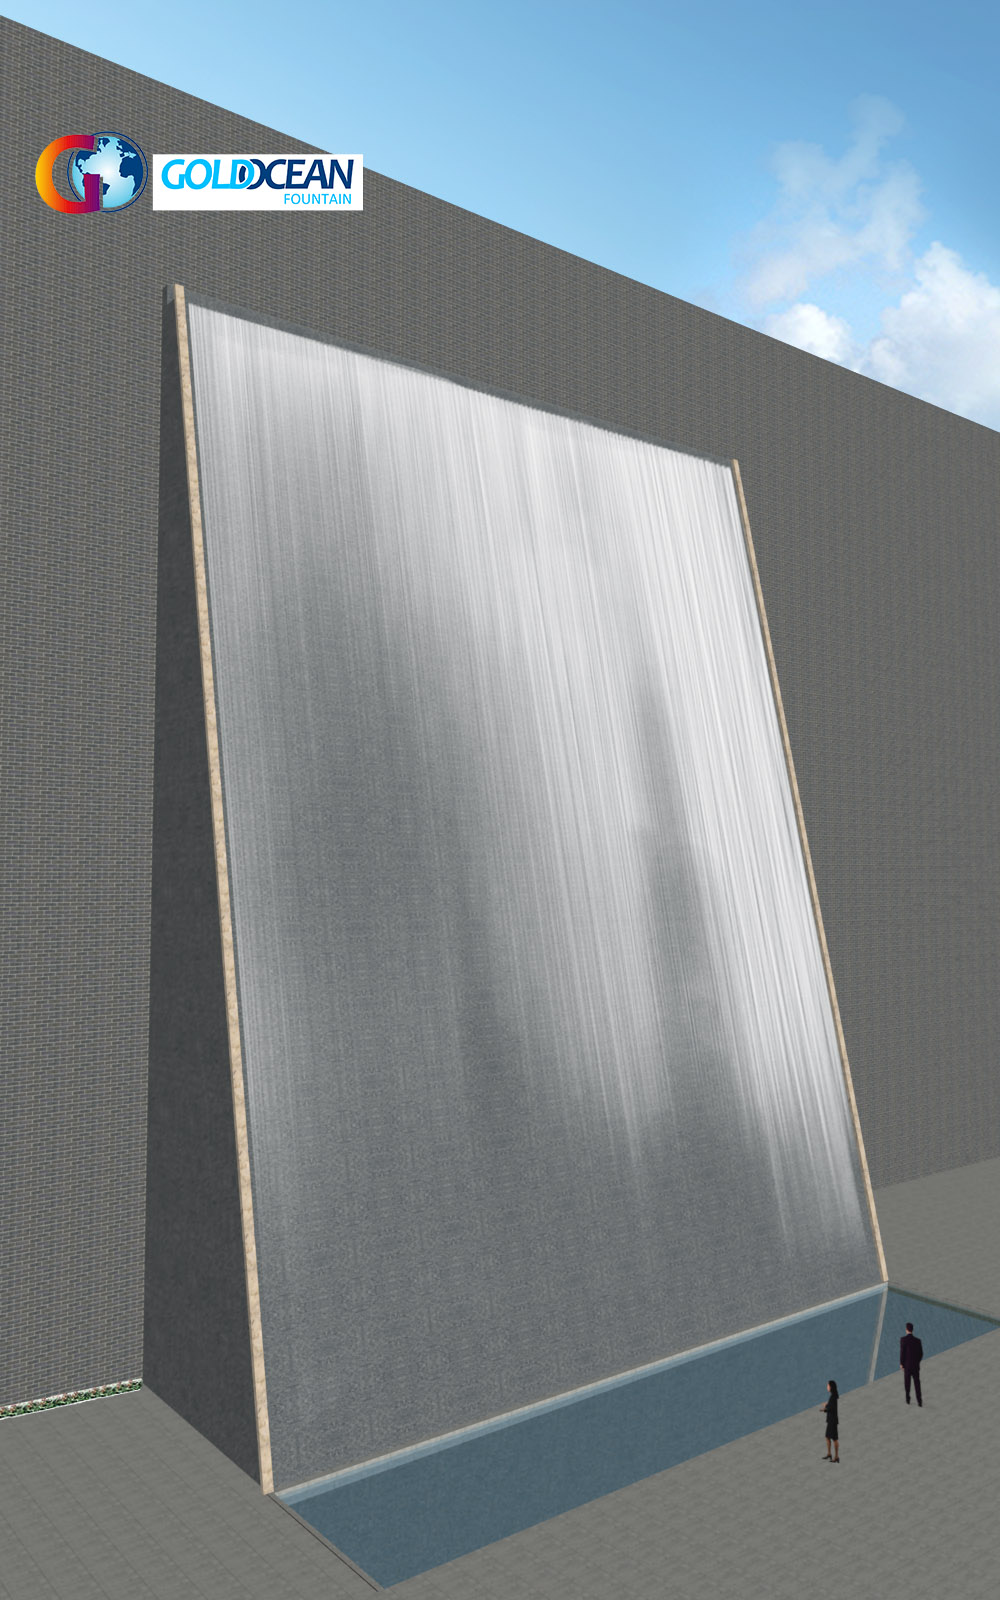 Outdoor Modern Stainless Steel Water Wall Waterfall